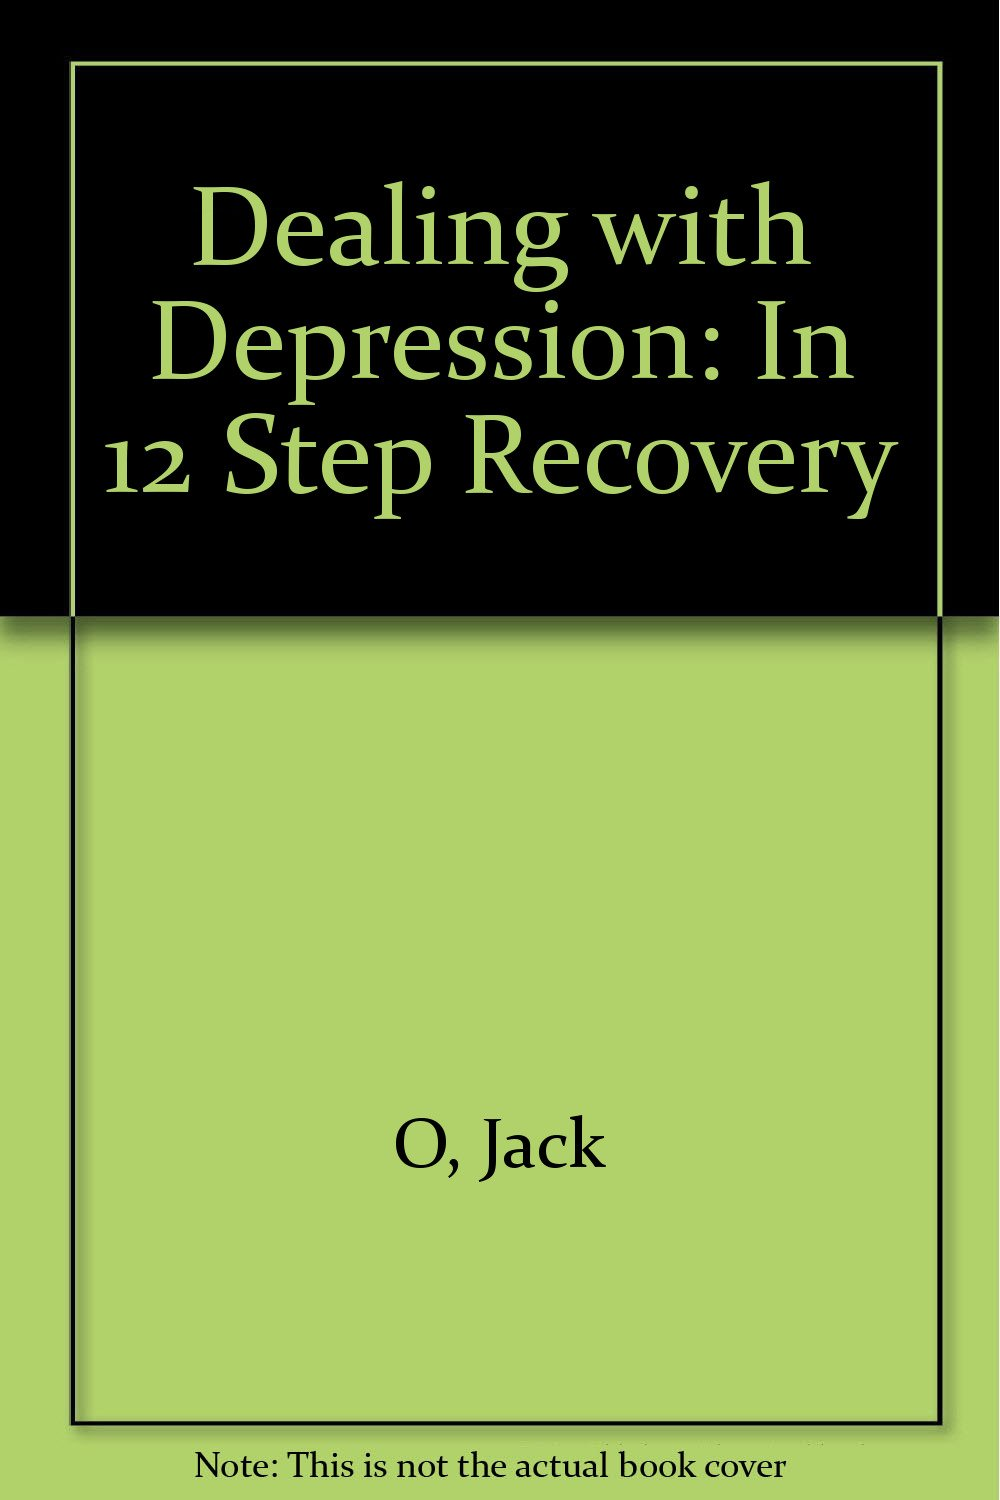 Dealing With Depression: In 12 Step Recovery (Fellow travelers series)